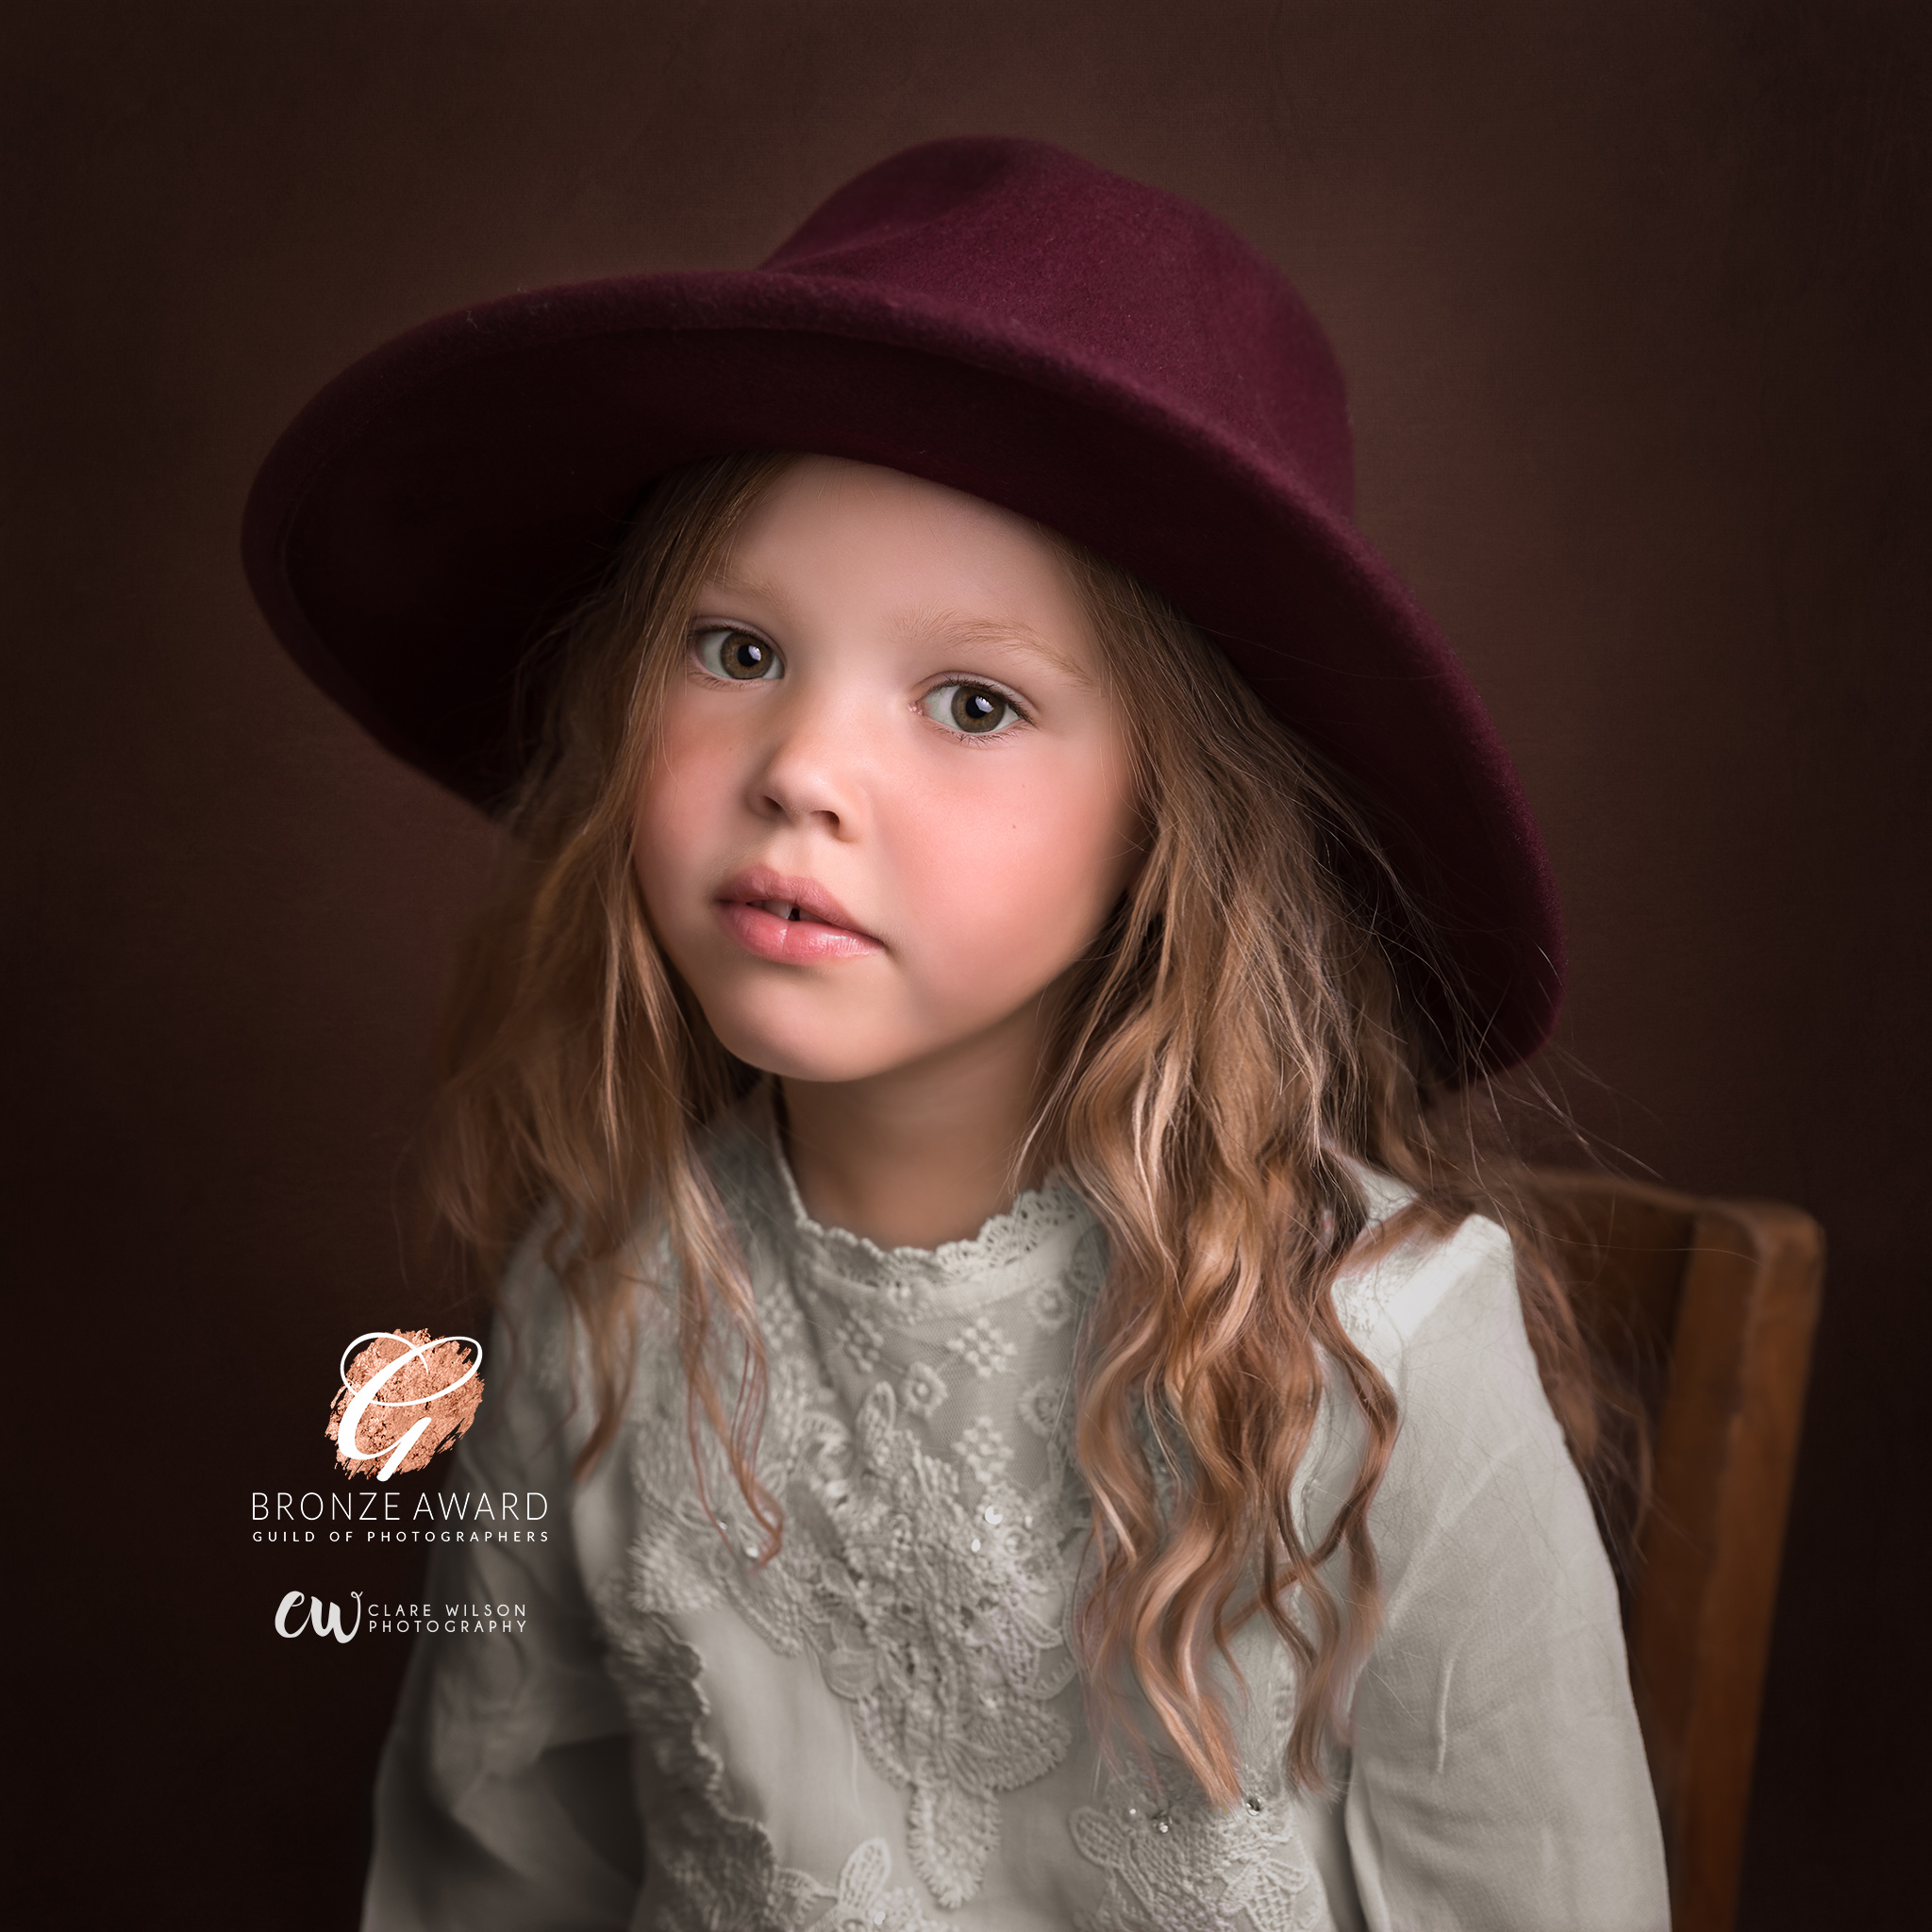 Fine art Child Portraiture Clare Wilson Photography Cardiff Caerphilly